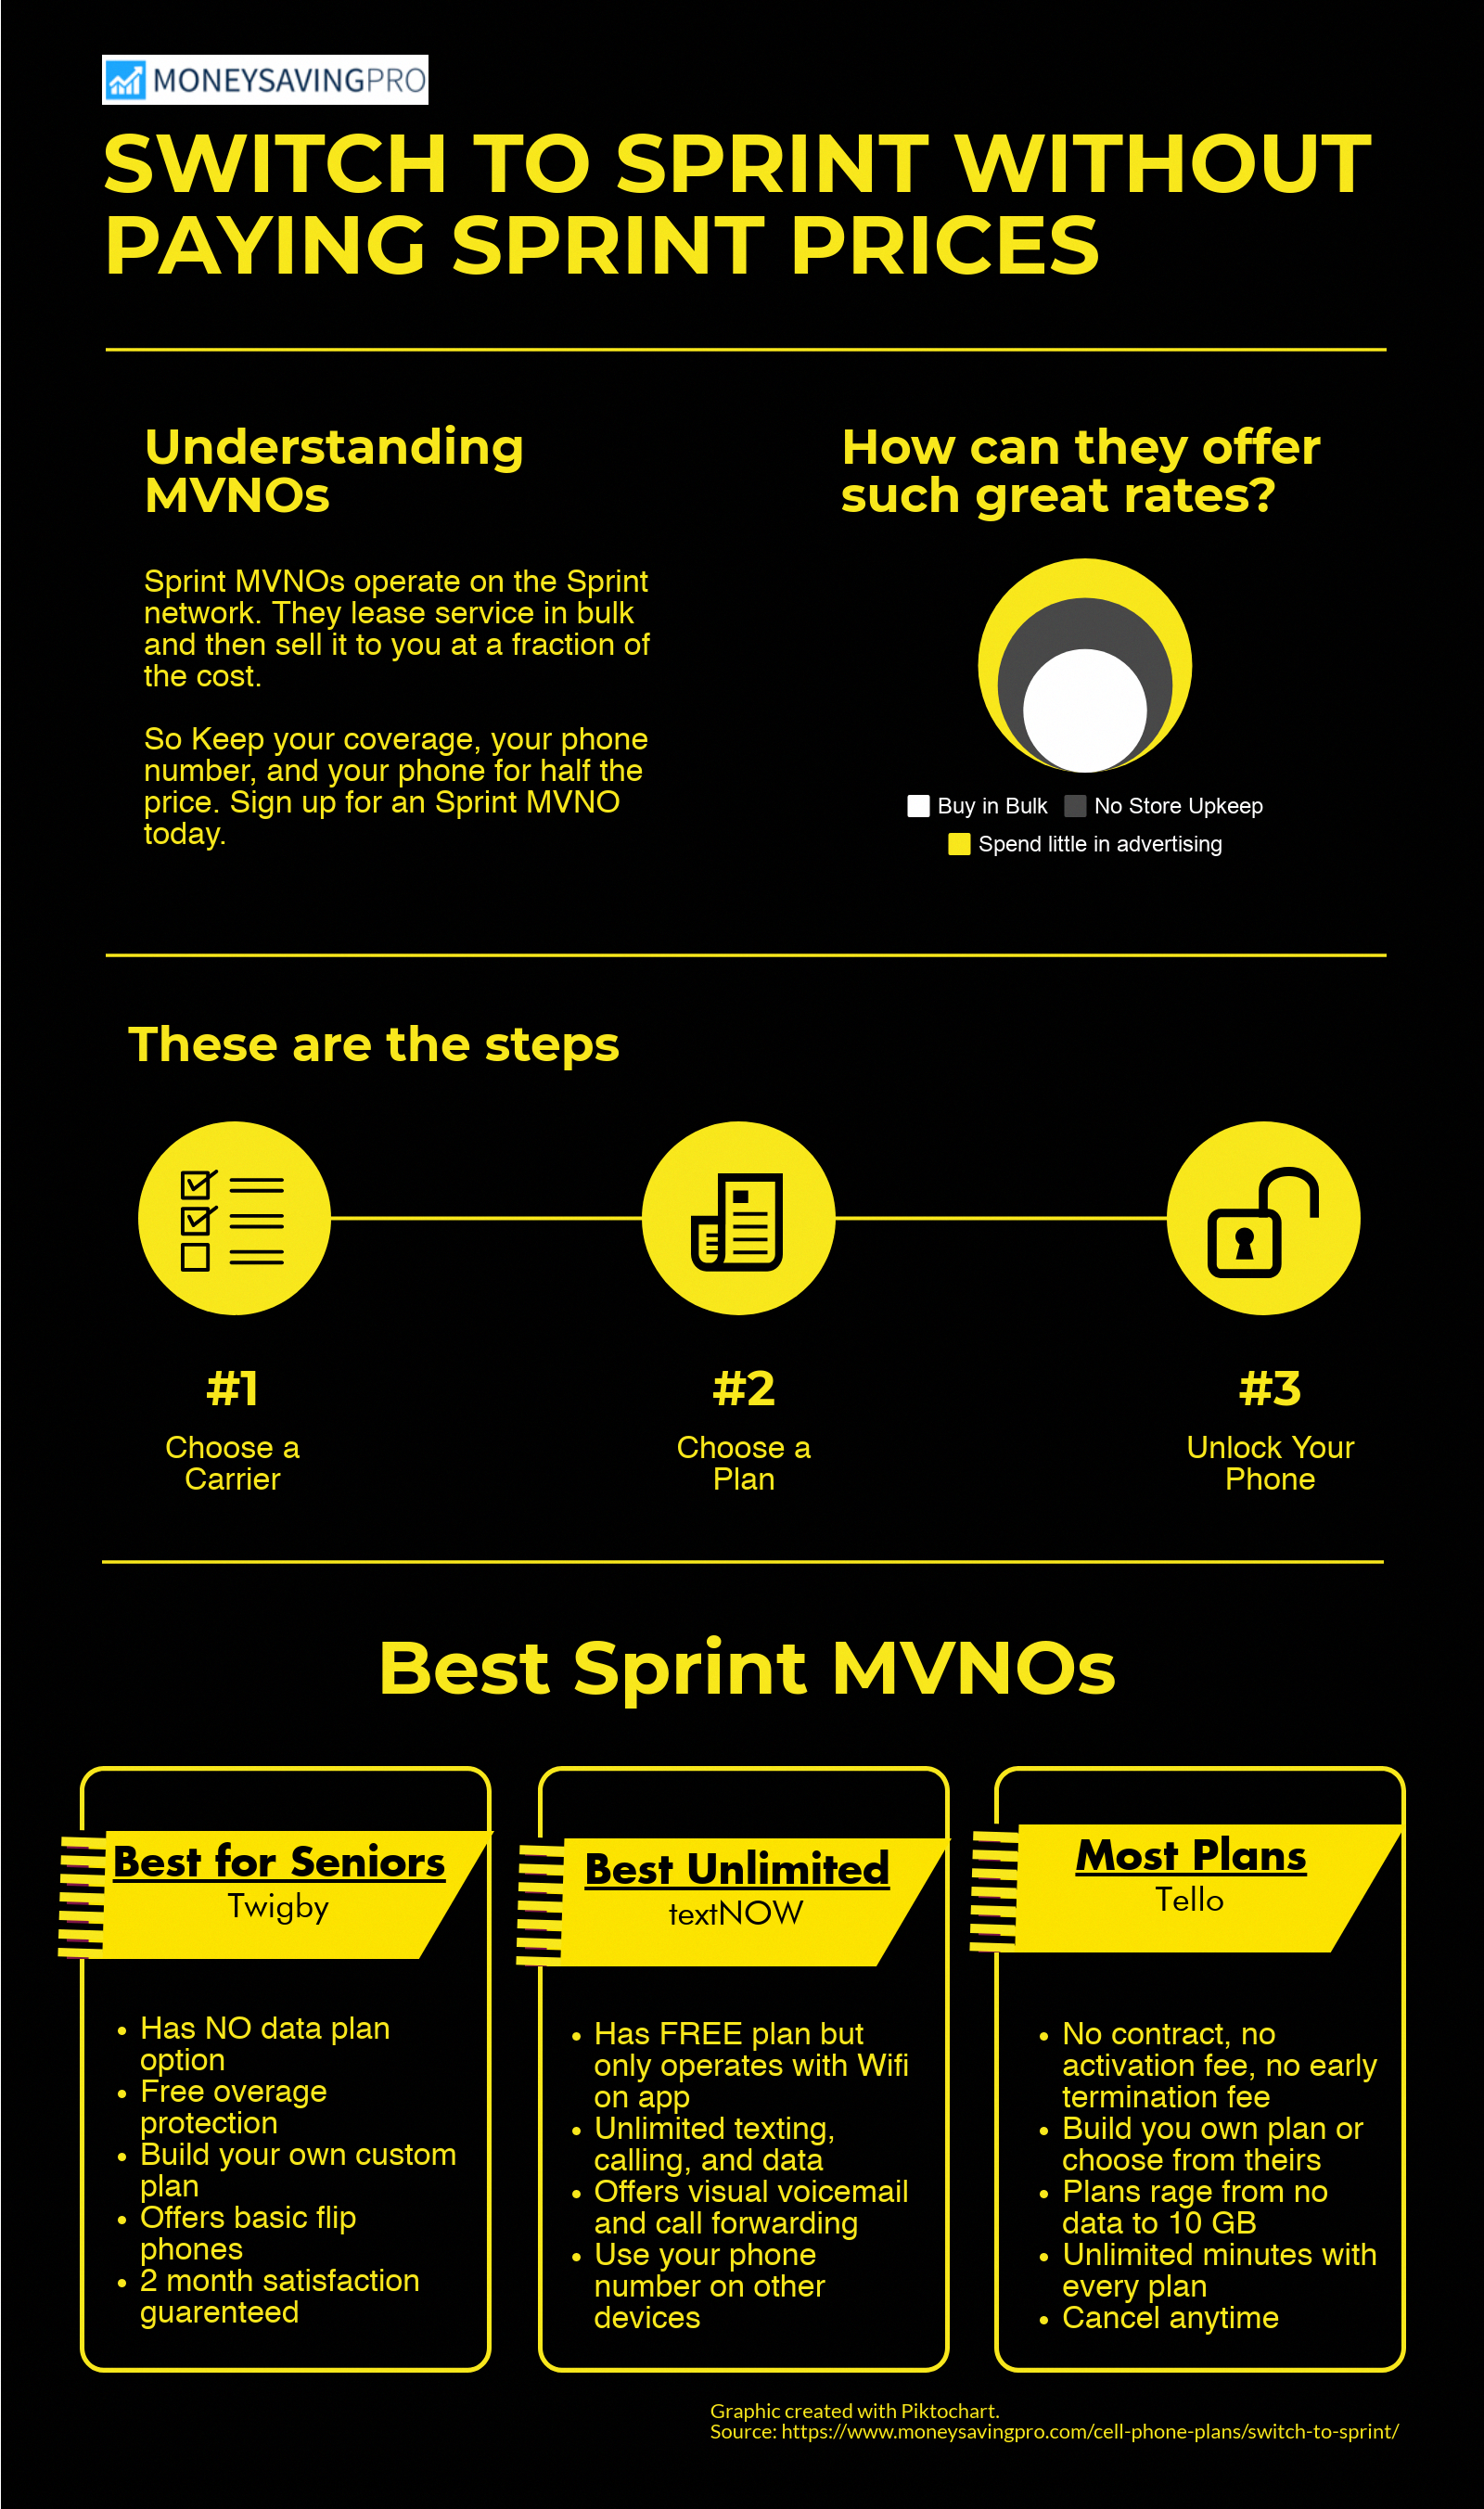 Sprint Mvnos Function By Leasing Coverage From The Actual Sprint Network Towers So You Ll Be A Compare Cell Phone Plans Cell Phone Plans Cell Phones In School